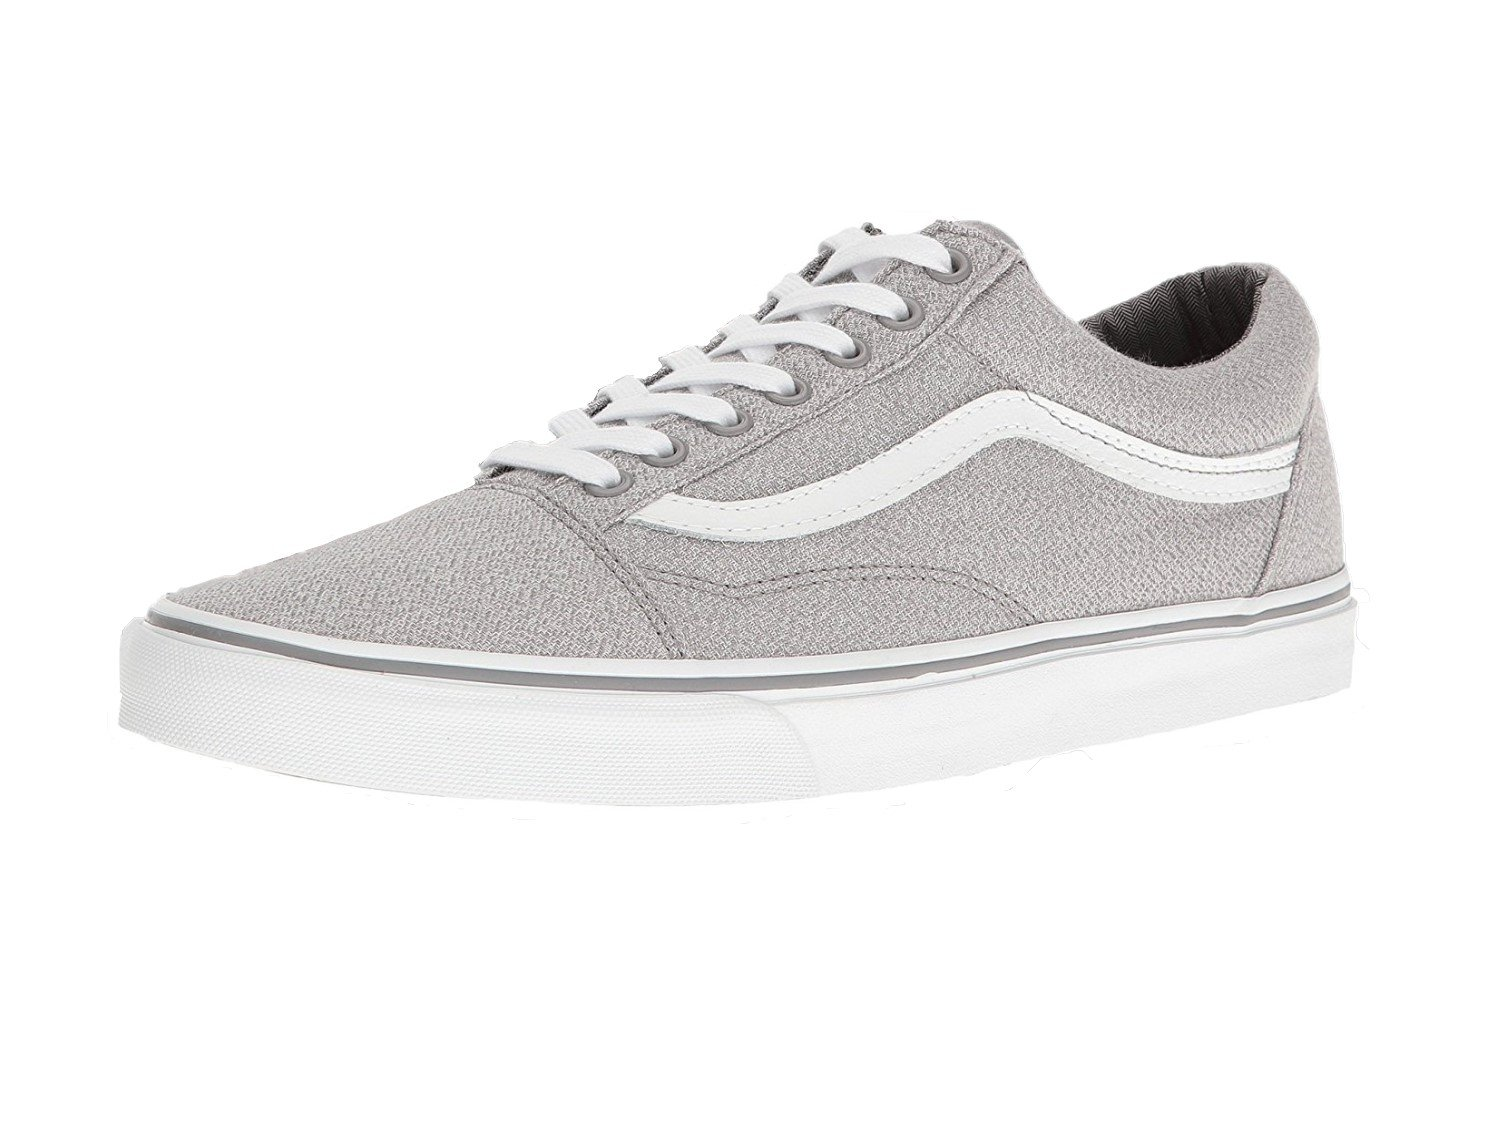 Vans Old Skool Unisex Adults' Low-Top Trainers B01I2B62FU 12 M US Women / 10.5 M US Men|(Suiting) Frost Grey/True White